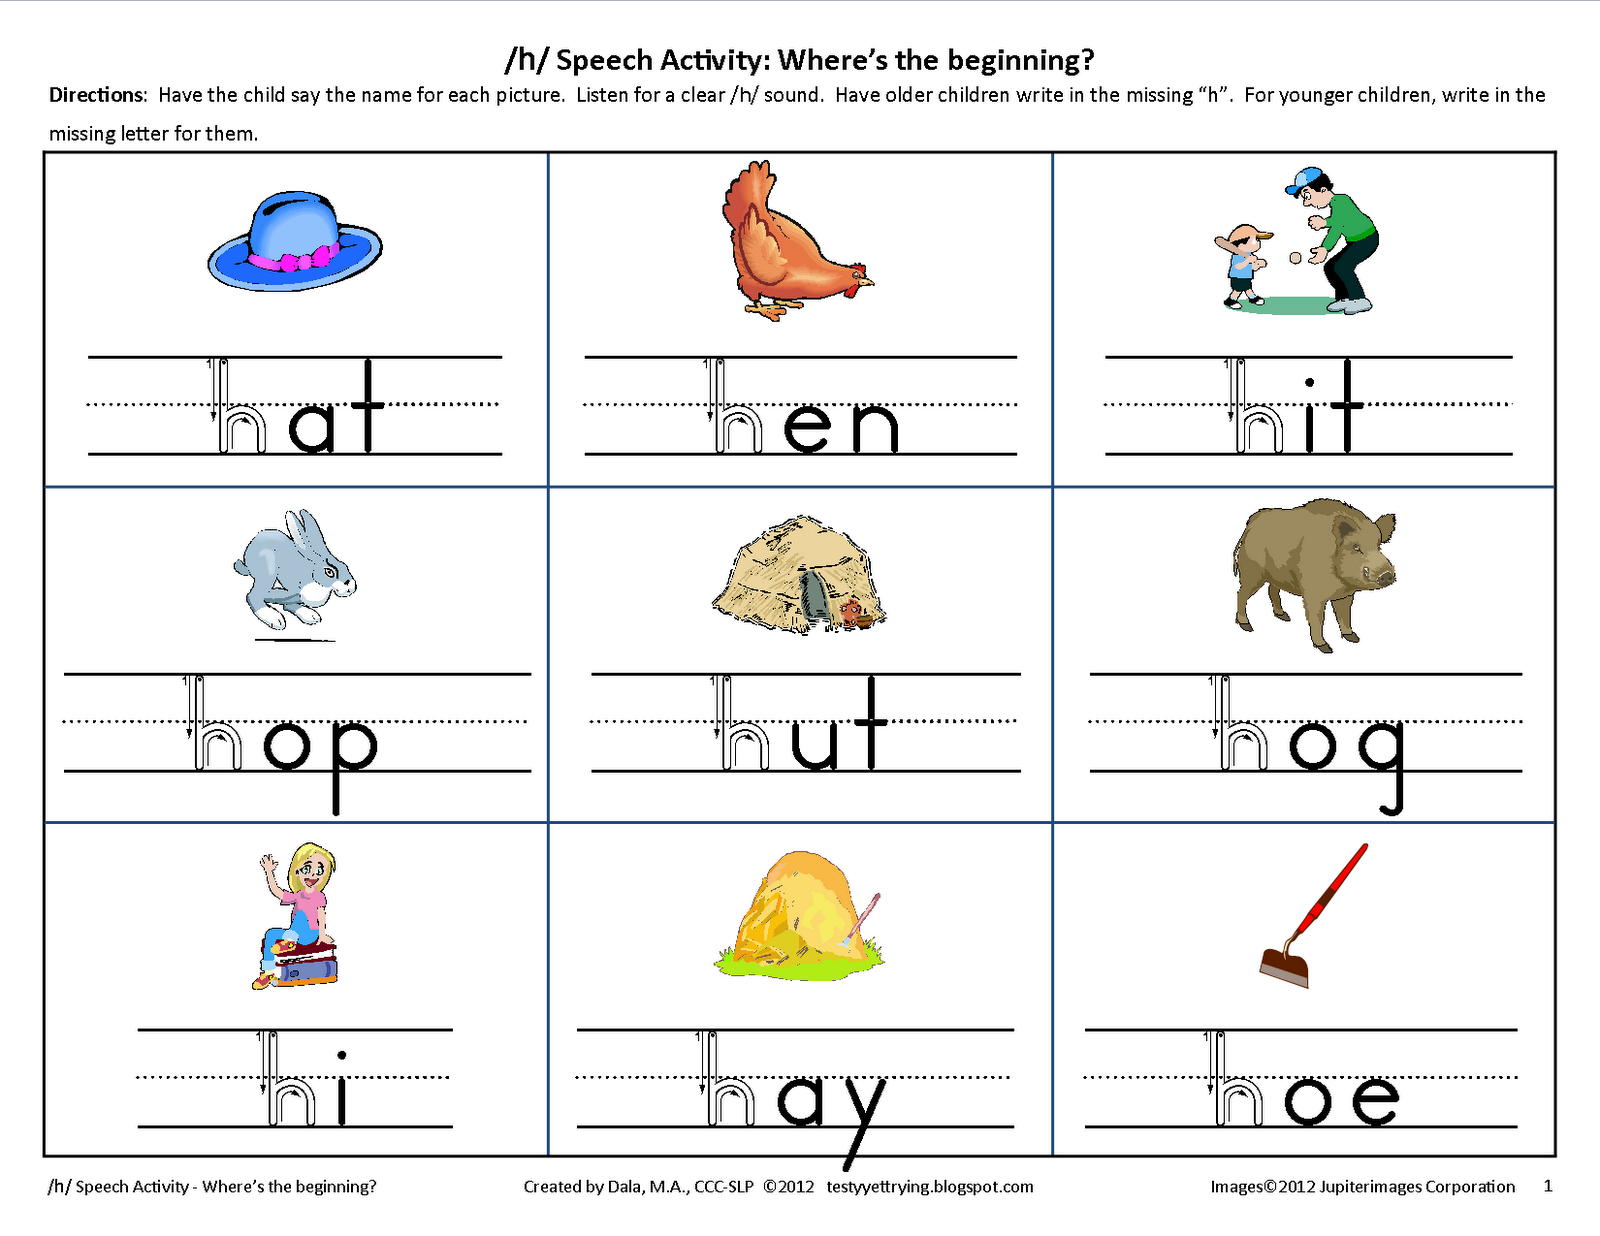 Proatmealus  Surprising Testy Yet Trying Initial H Speech Worksheet With Fair Make Classroom Teachers Happy Reinforce Phonics And Handwriting And Practice Speech All At The Same Time With Archaic Composite Number Worksheets Also Grade  Activity Worksheets In Addition The Giraffe And The Pelly And Me Worksheets And Lower Case Letter Worksheets As Well As Worksheets English Grammar Additionally Geometric Pattern Worksheet From Testyyettryingblogspotcom With Proatmealus  Fair Testy Yet Trying Initial H Speech Worksheet With Archaic Make Classroom Teachers Happy Reinforce Phonics And Handwriting And Practice Speech All At The Same Time And Surprising Composite Number Worksheets Also Grade  Activity Worksheets In Addition The Giraffe And The Pelly And Me Worksheets From Testyyettryingblogspotcom